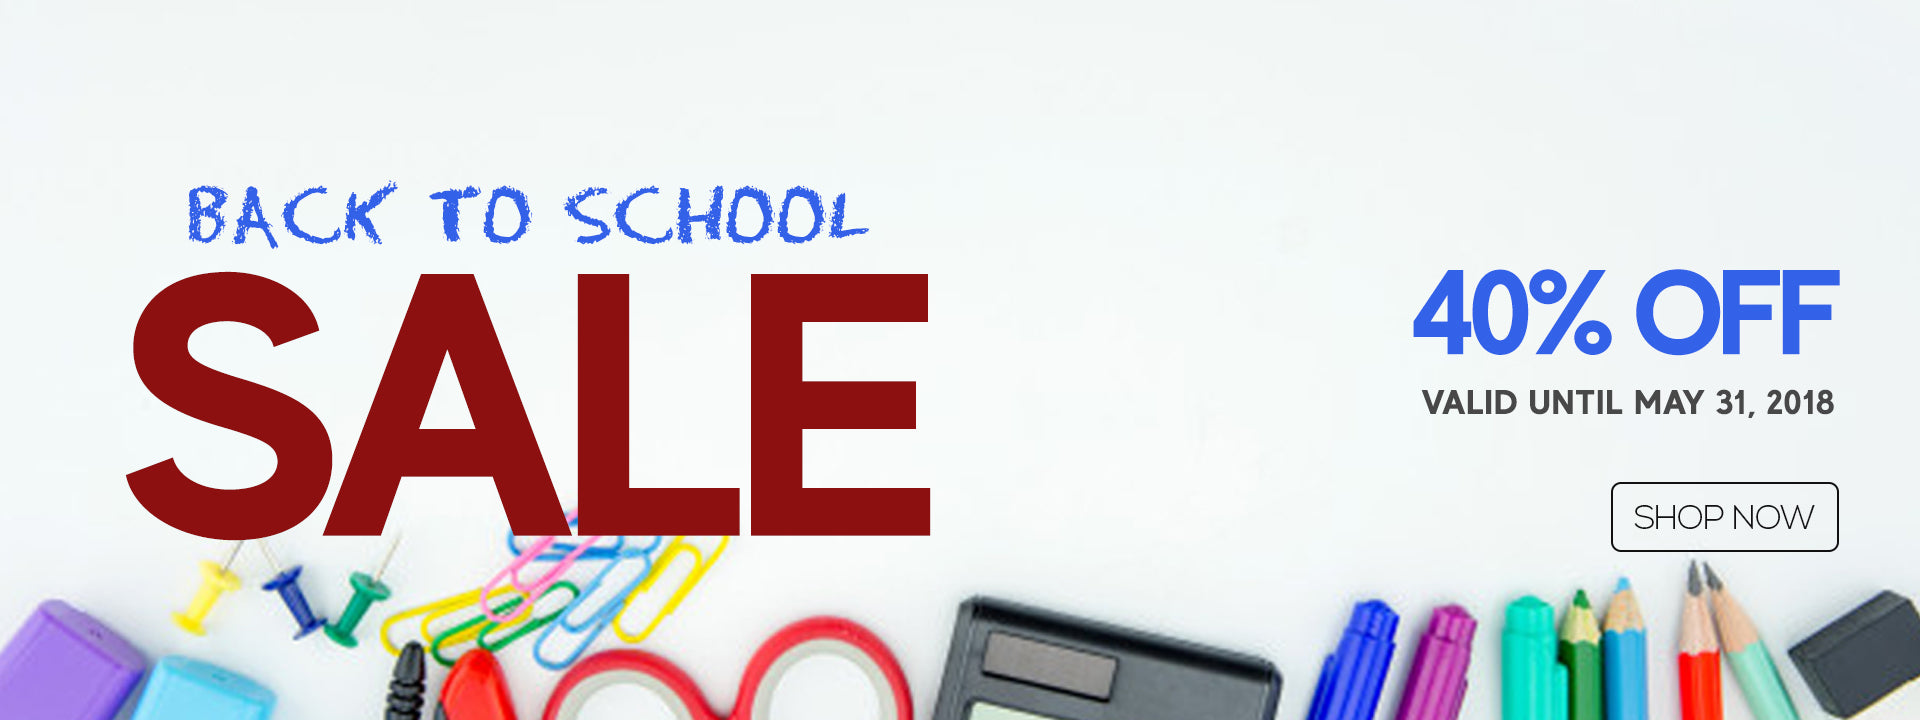 Back-to-School Sale